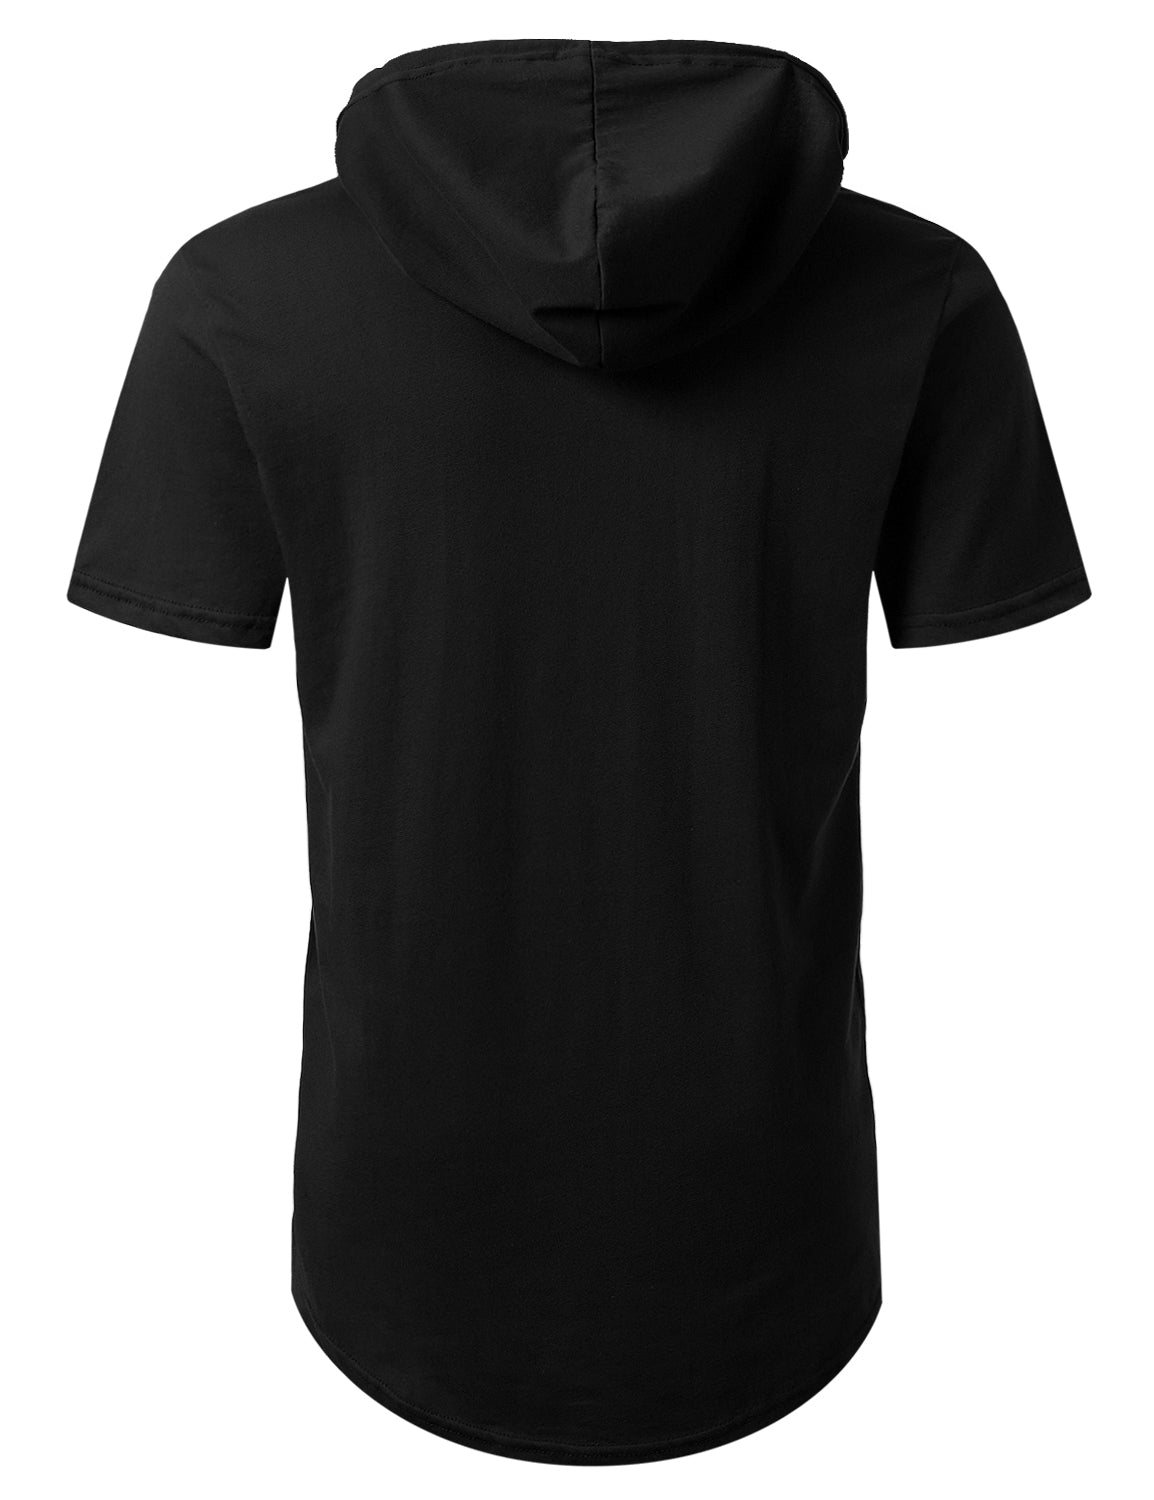 BLACK Short Sleeve Pullover Hoodie Shirt - URBANCREWS